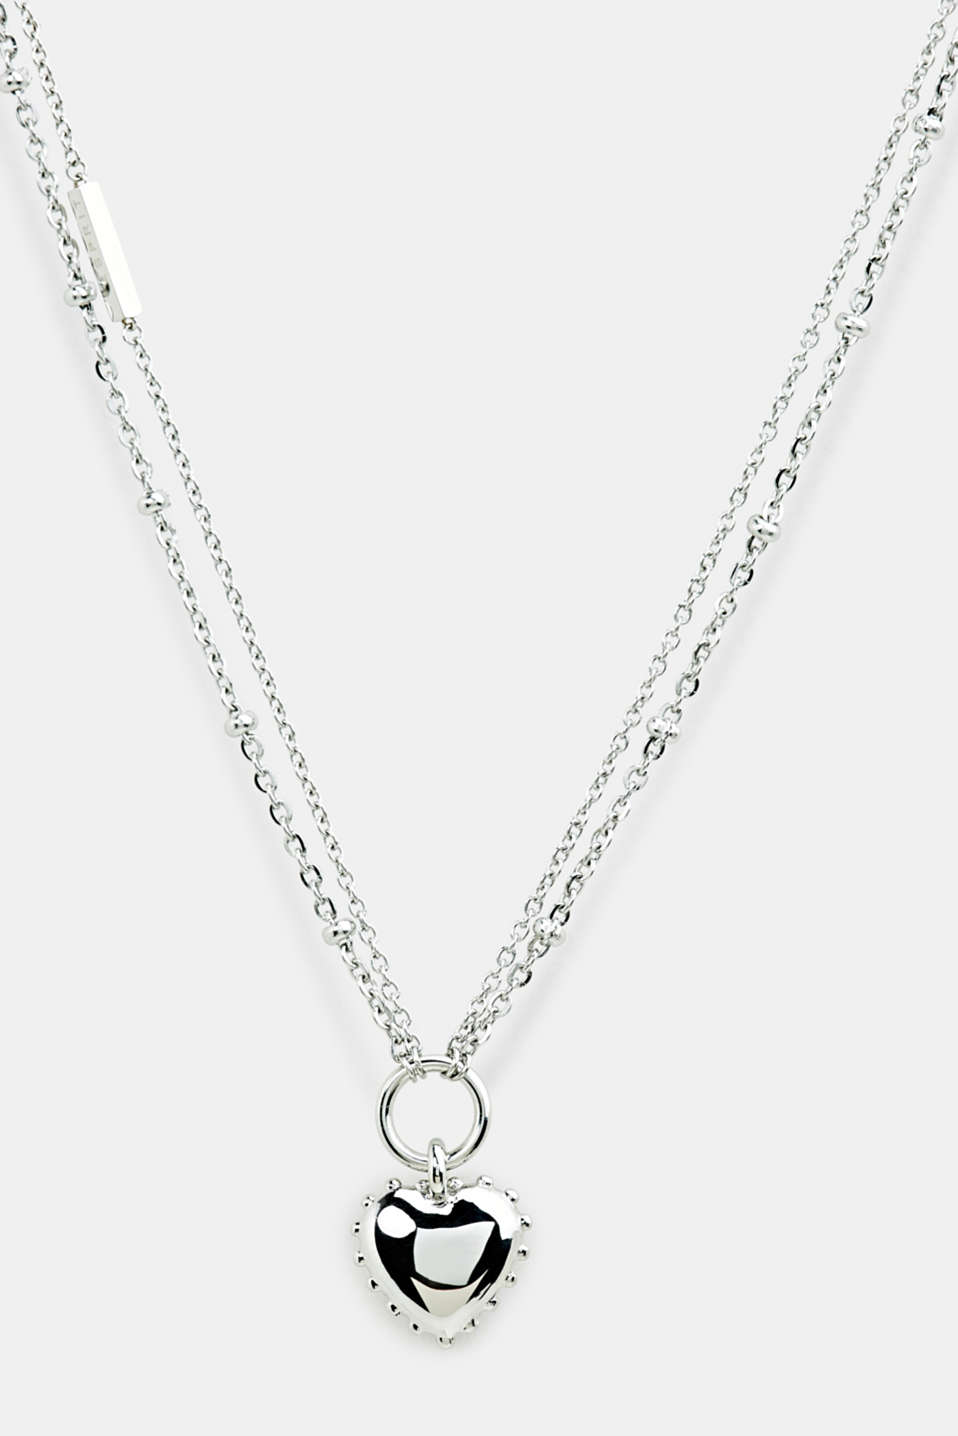 Necklace with heart pendant, stainless steel, LCSILVER, detail image number 0